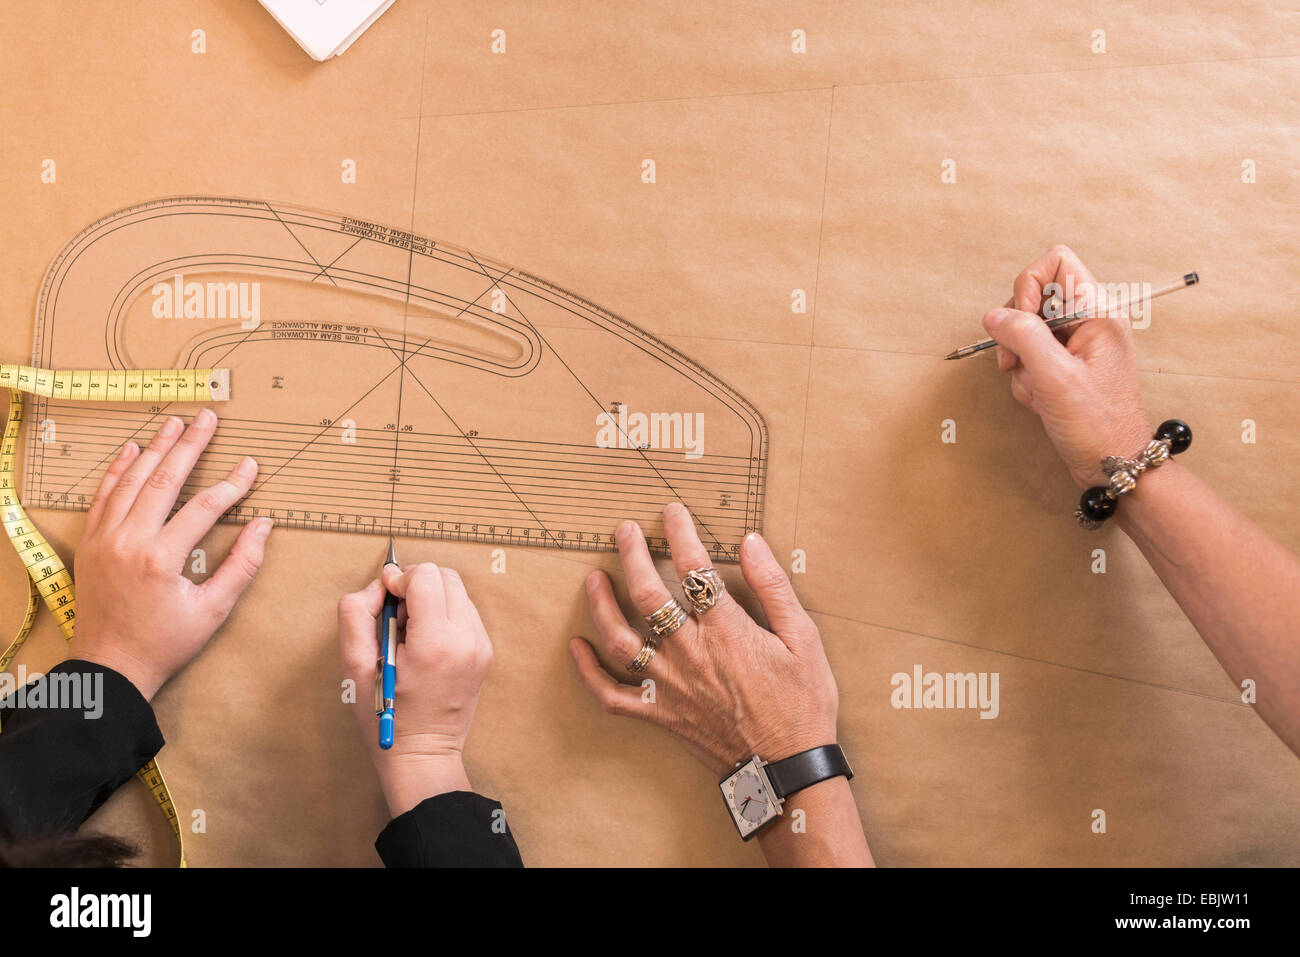 Overhead view of seamstresses hands drawing with curved ruler on dressmakers pattern in workshop - Stock Image